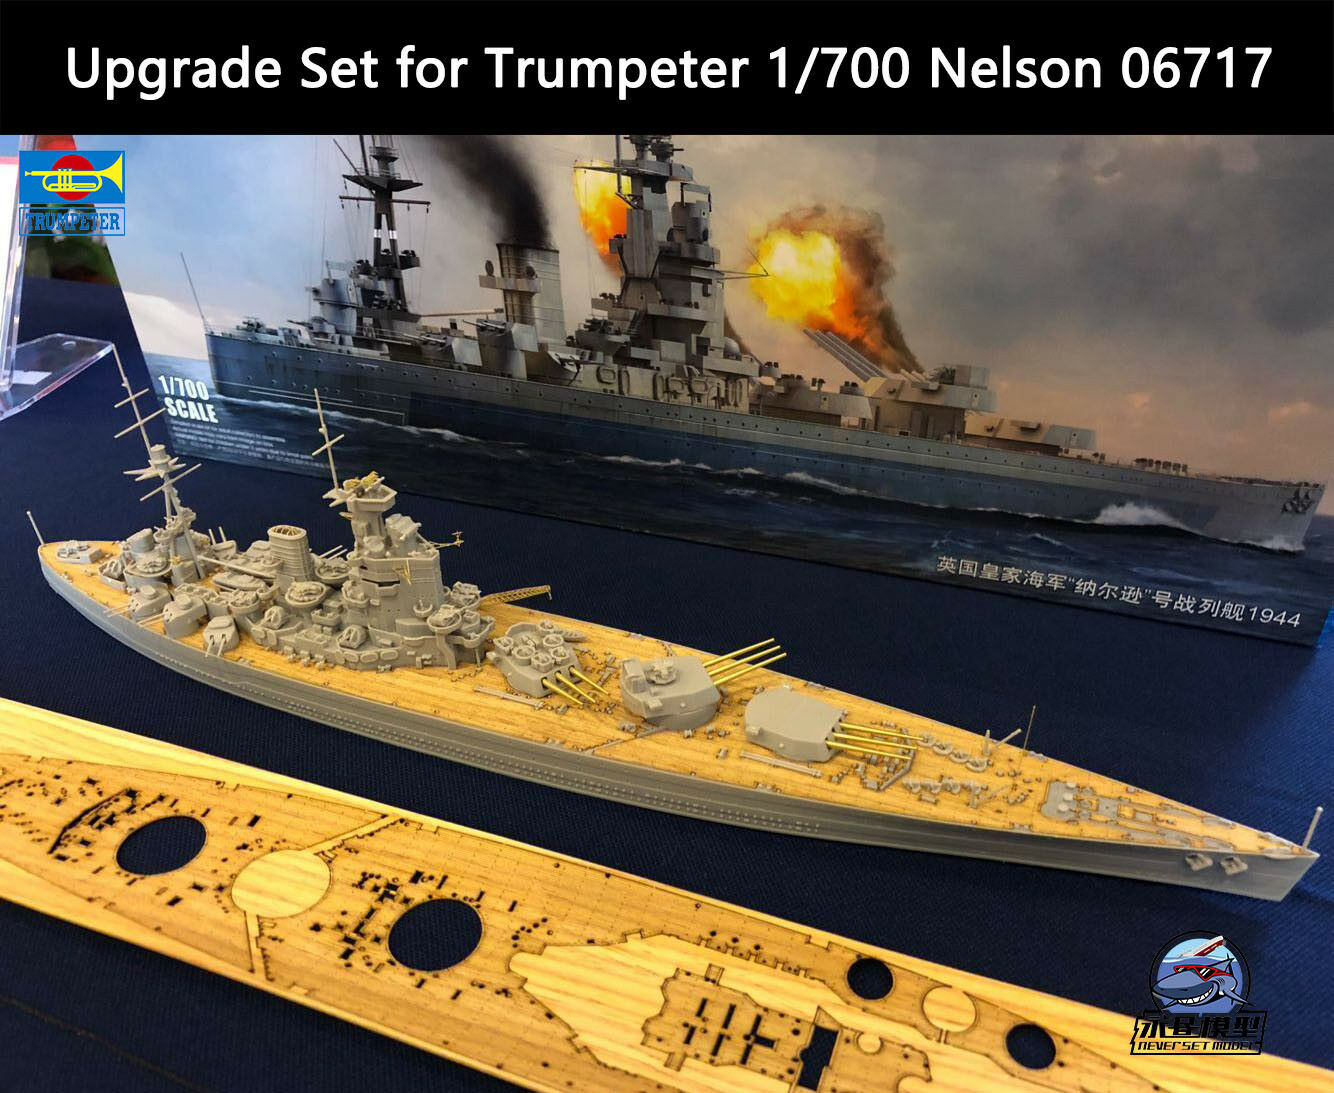 Upgrade Set for Trumpeter 1 700 HMS Nelson Battleship 06717